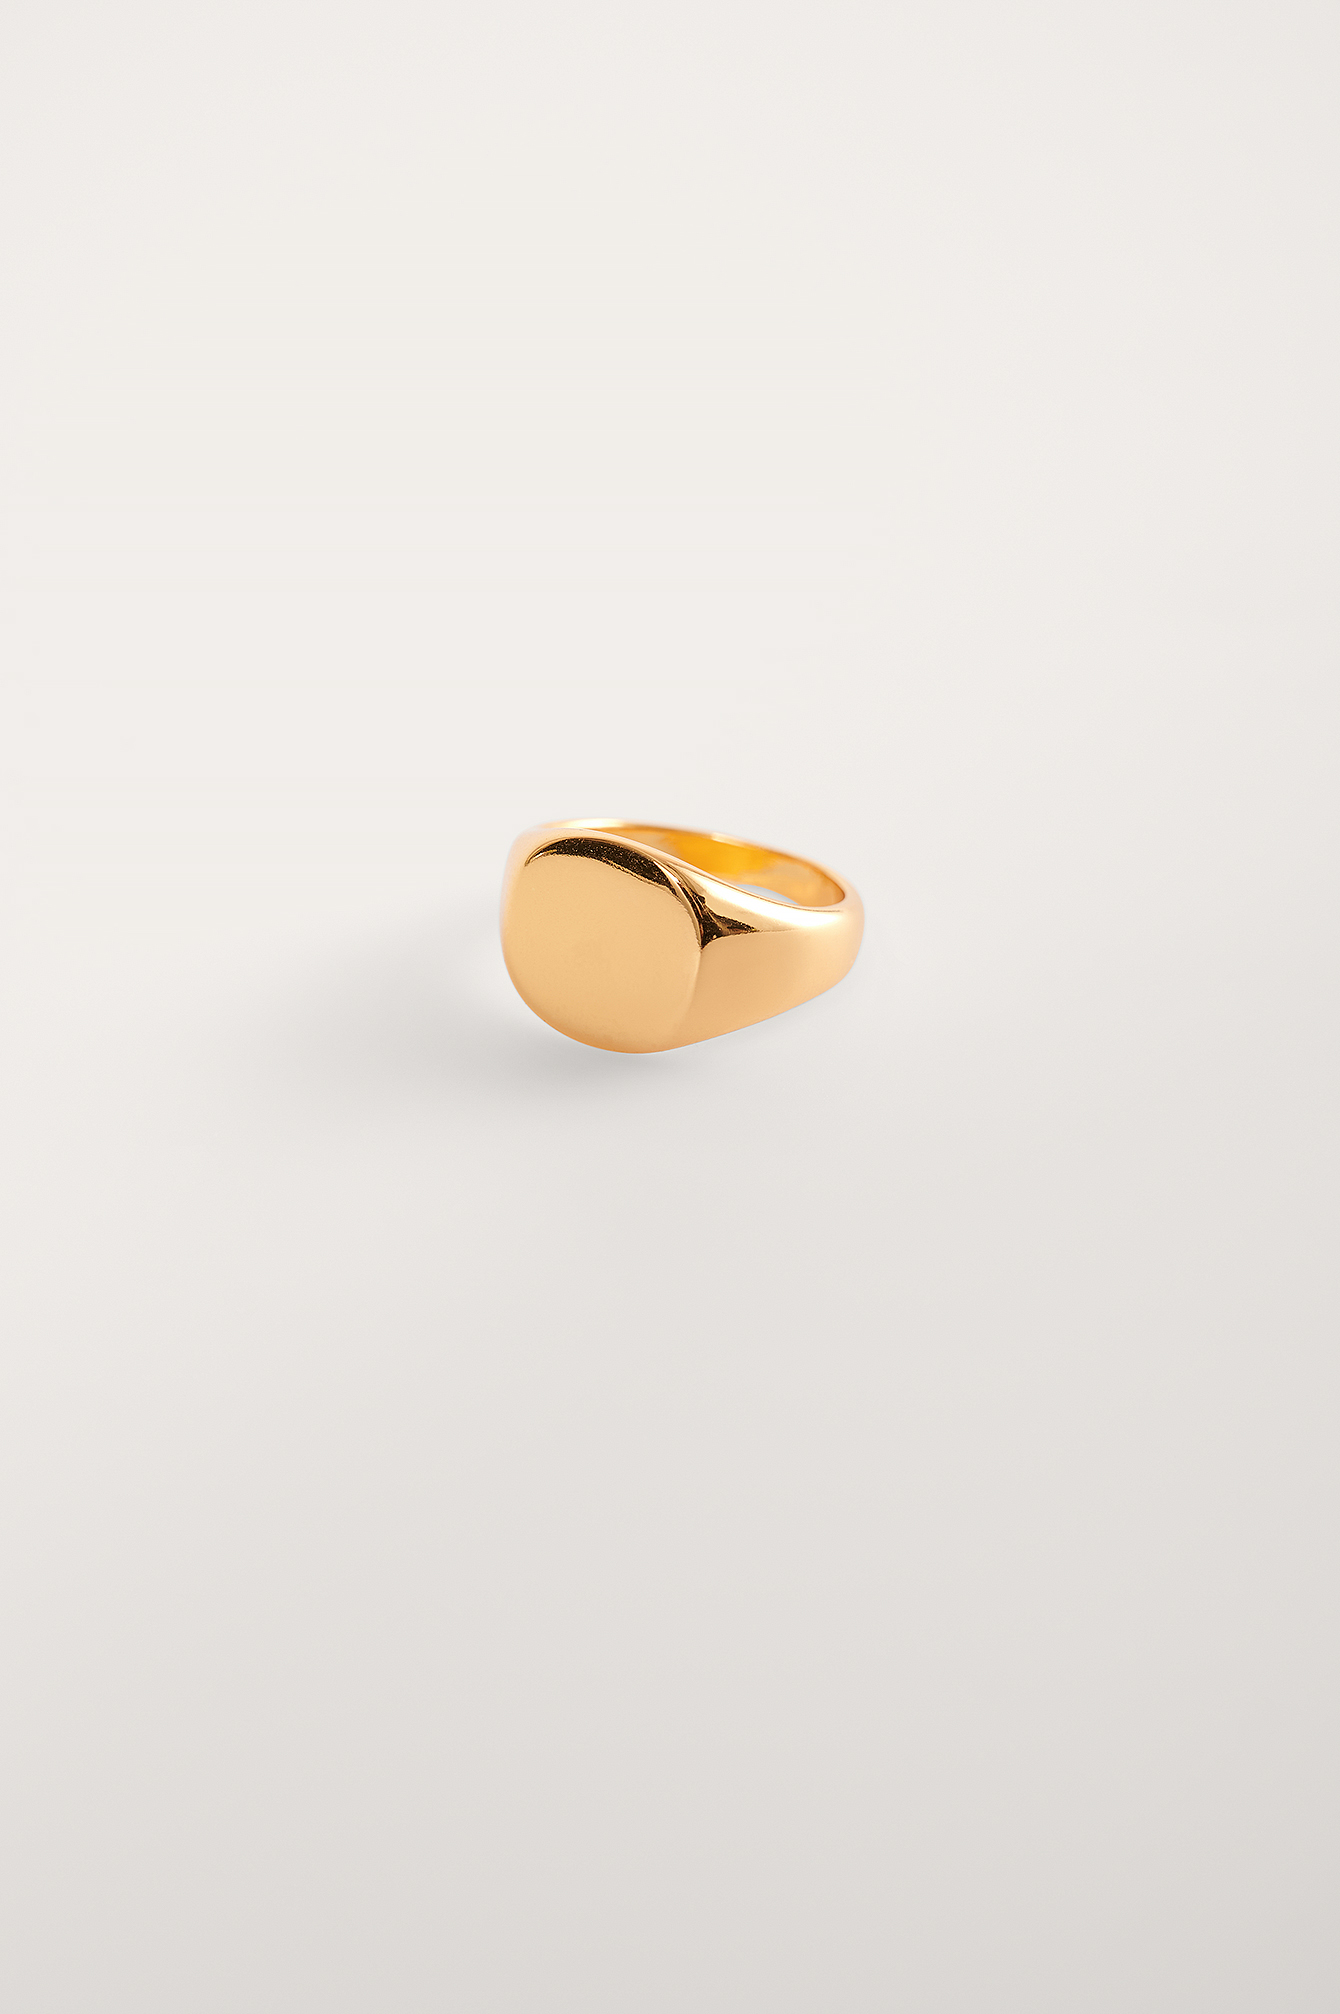 Gold Gold Plated Signet Ring